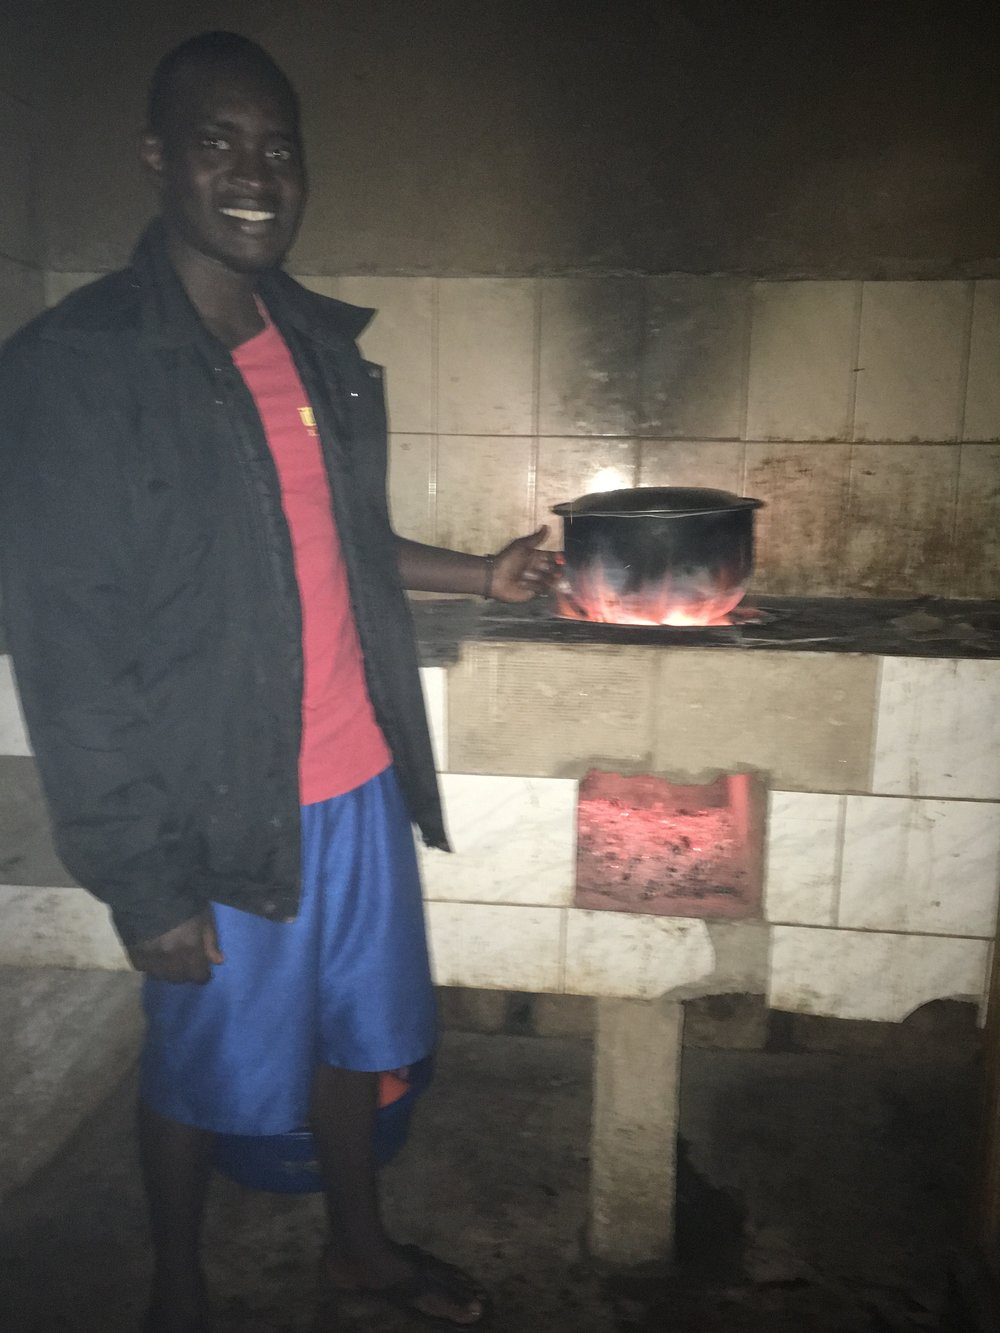 David shows off the boys' kitchen in use. That stove gets super hot and uses a lot less charcoal too.